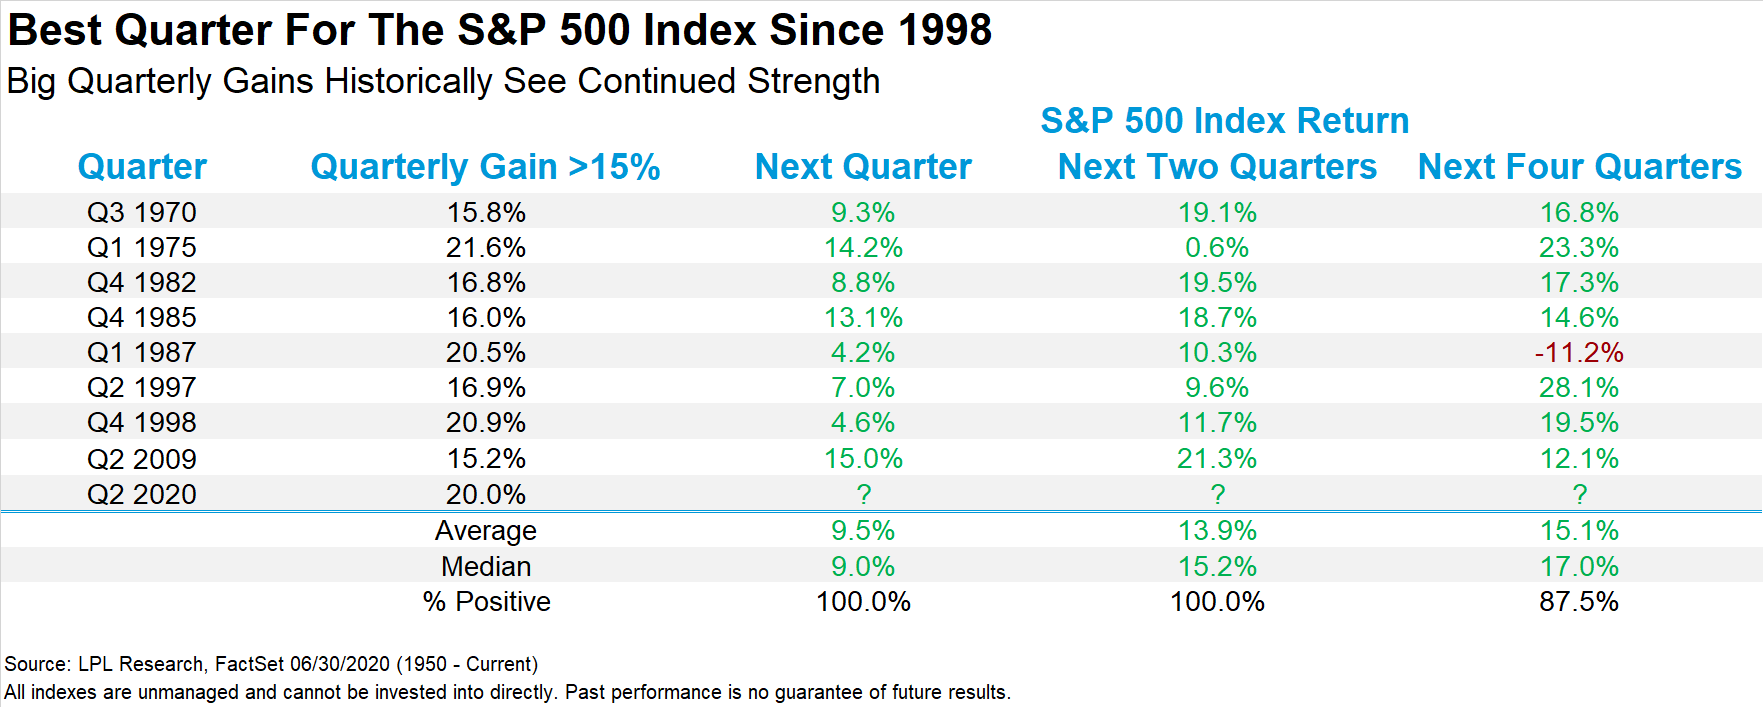 Best Quarter For The S&P 500 Index Since 1998